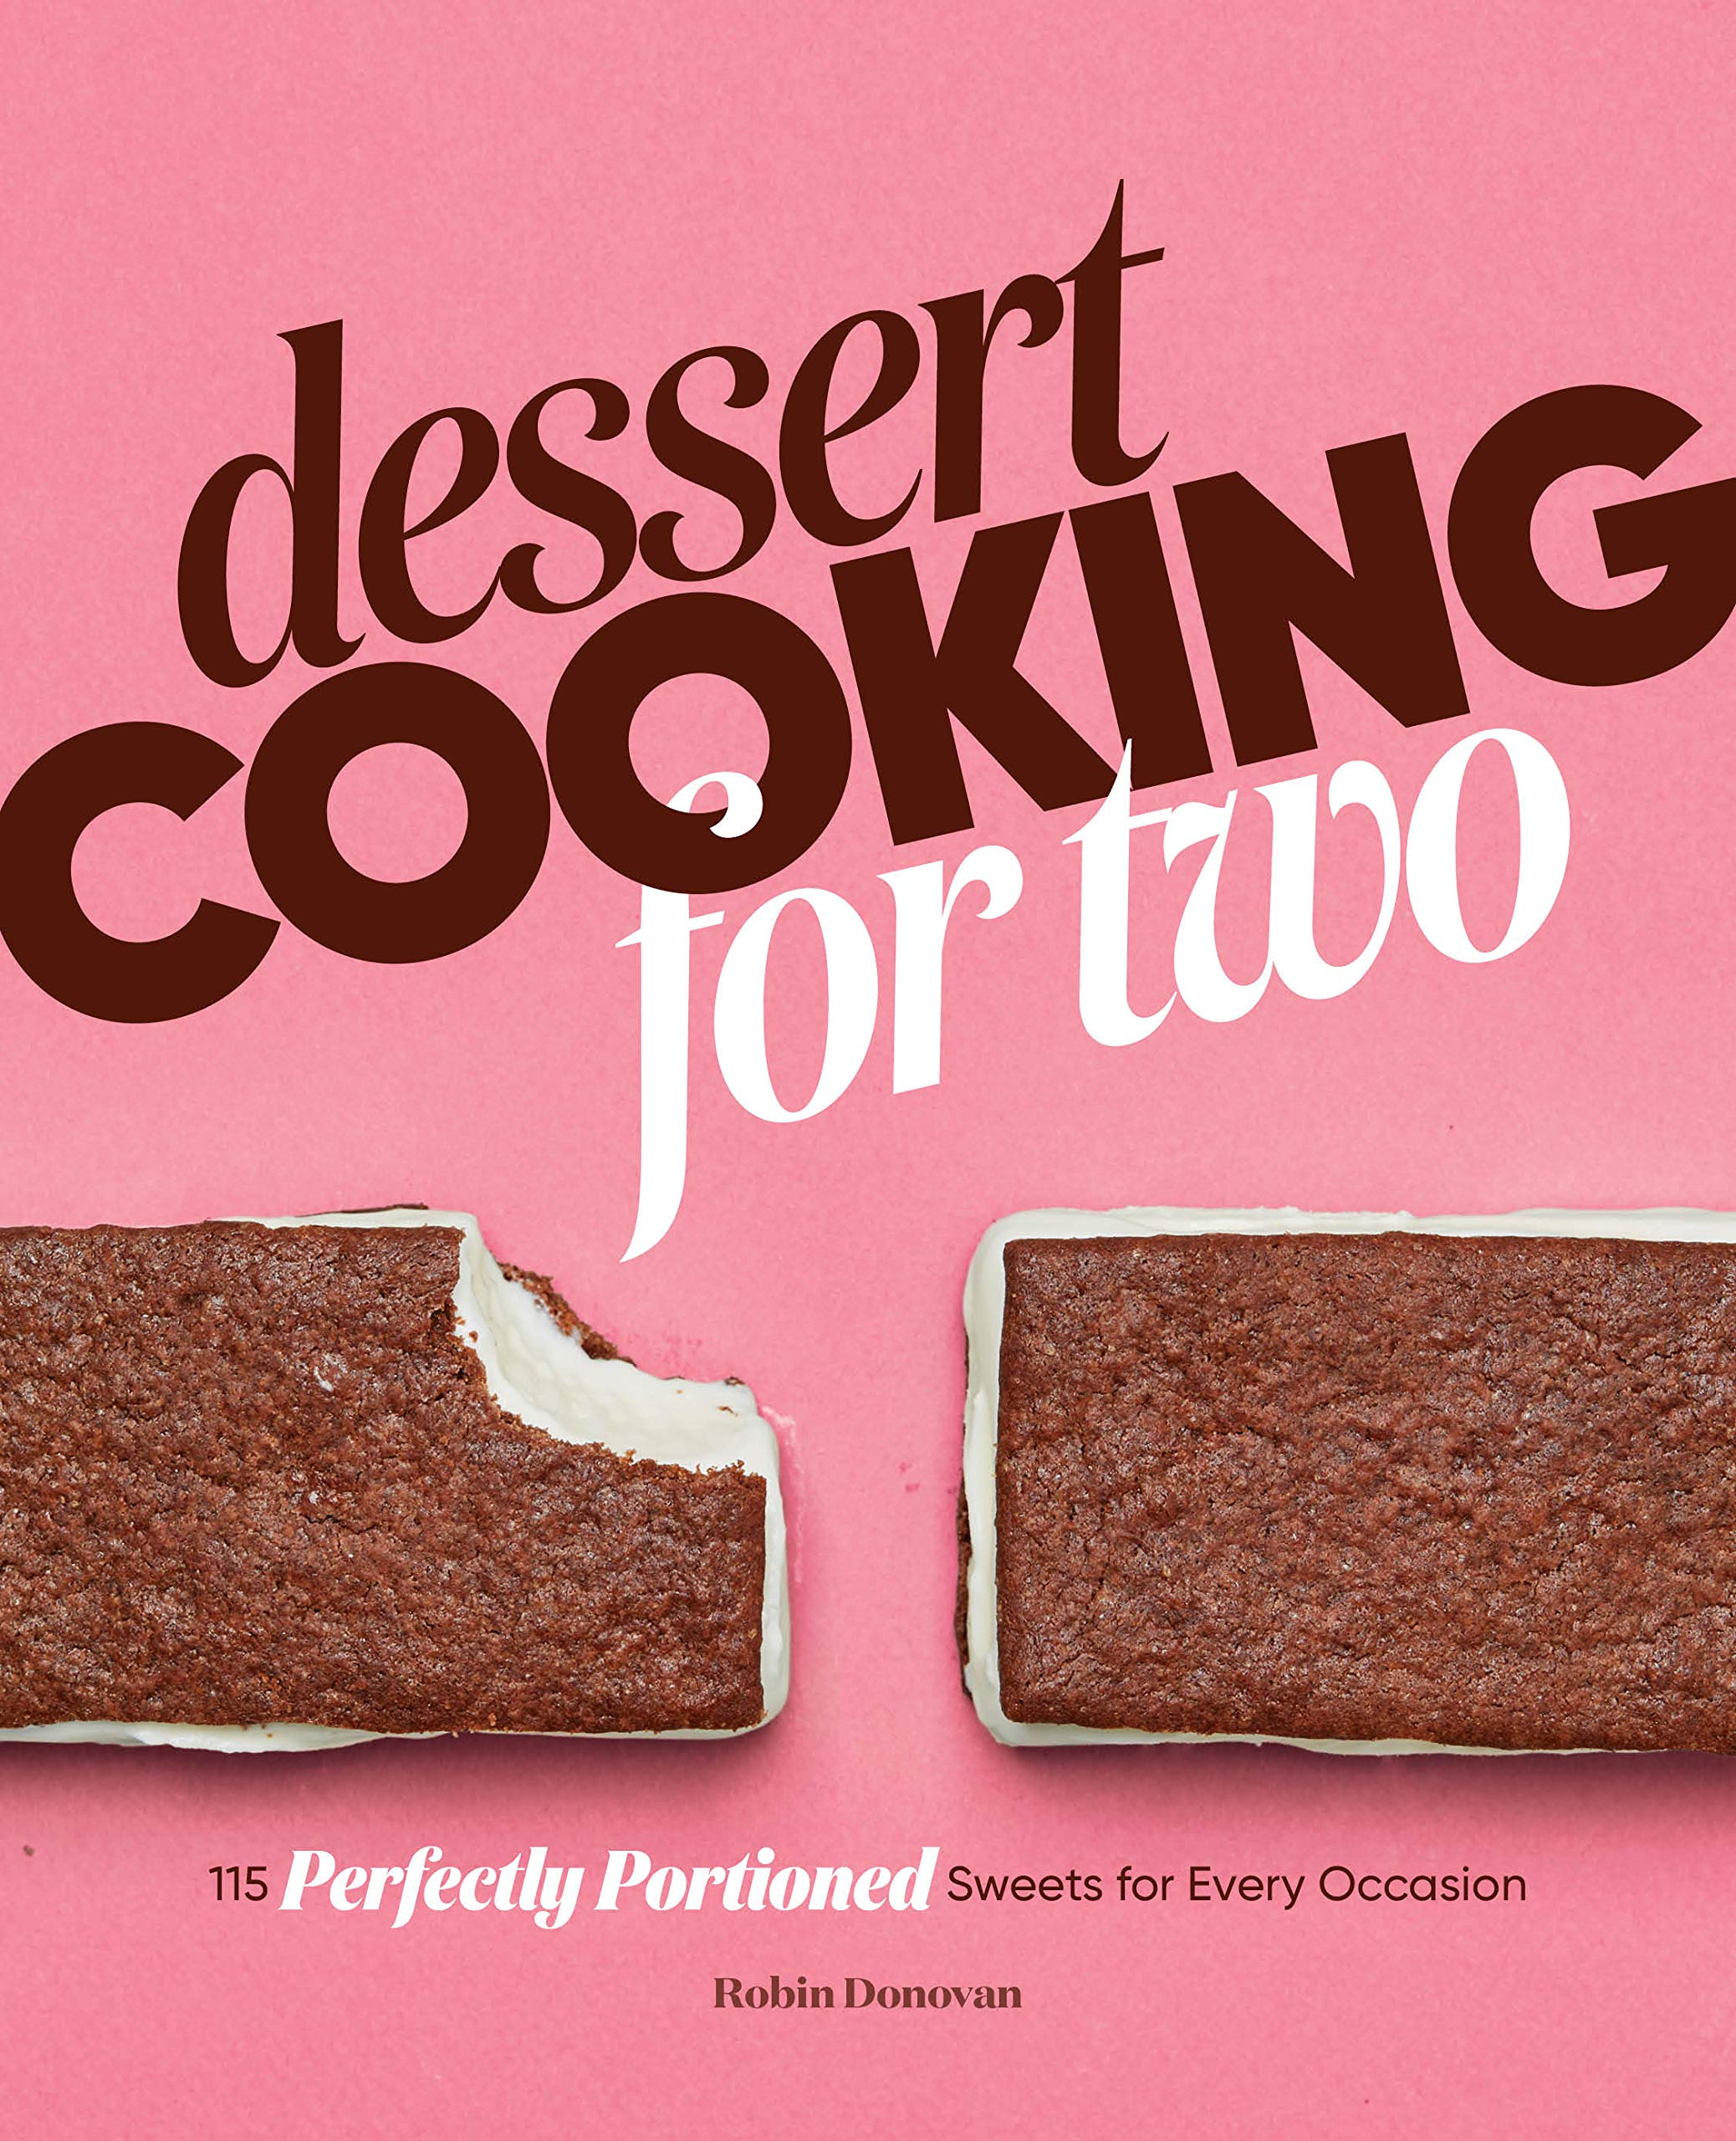 Dessert Cooking for Two cookbook cover